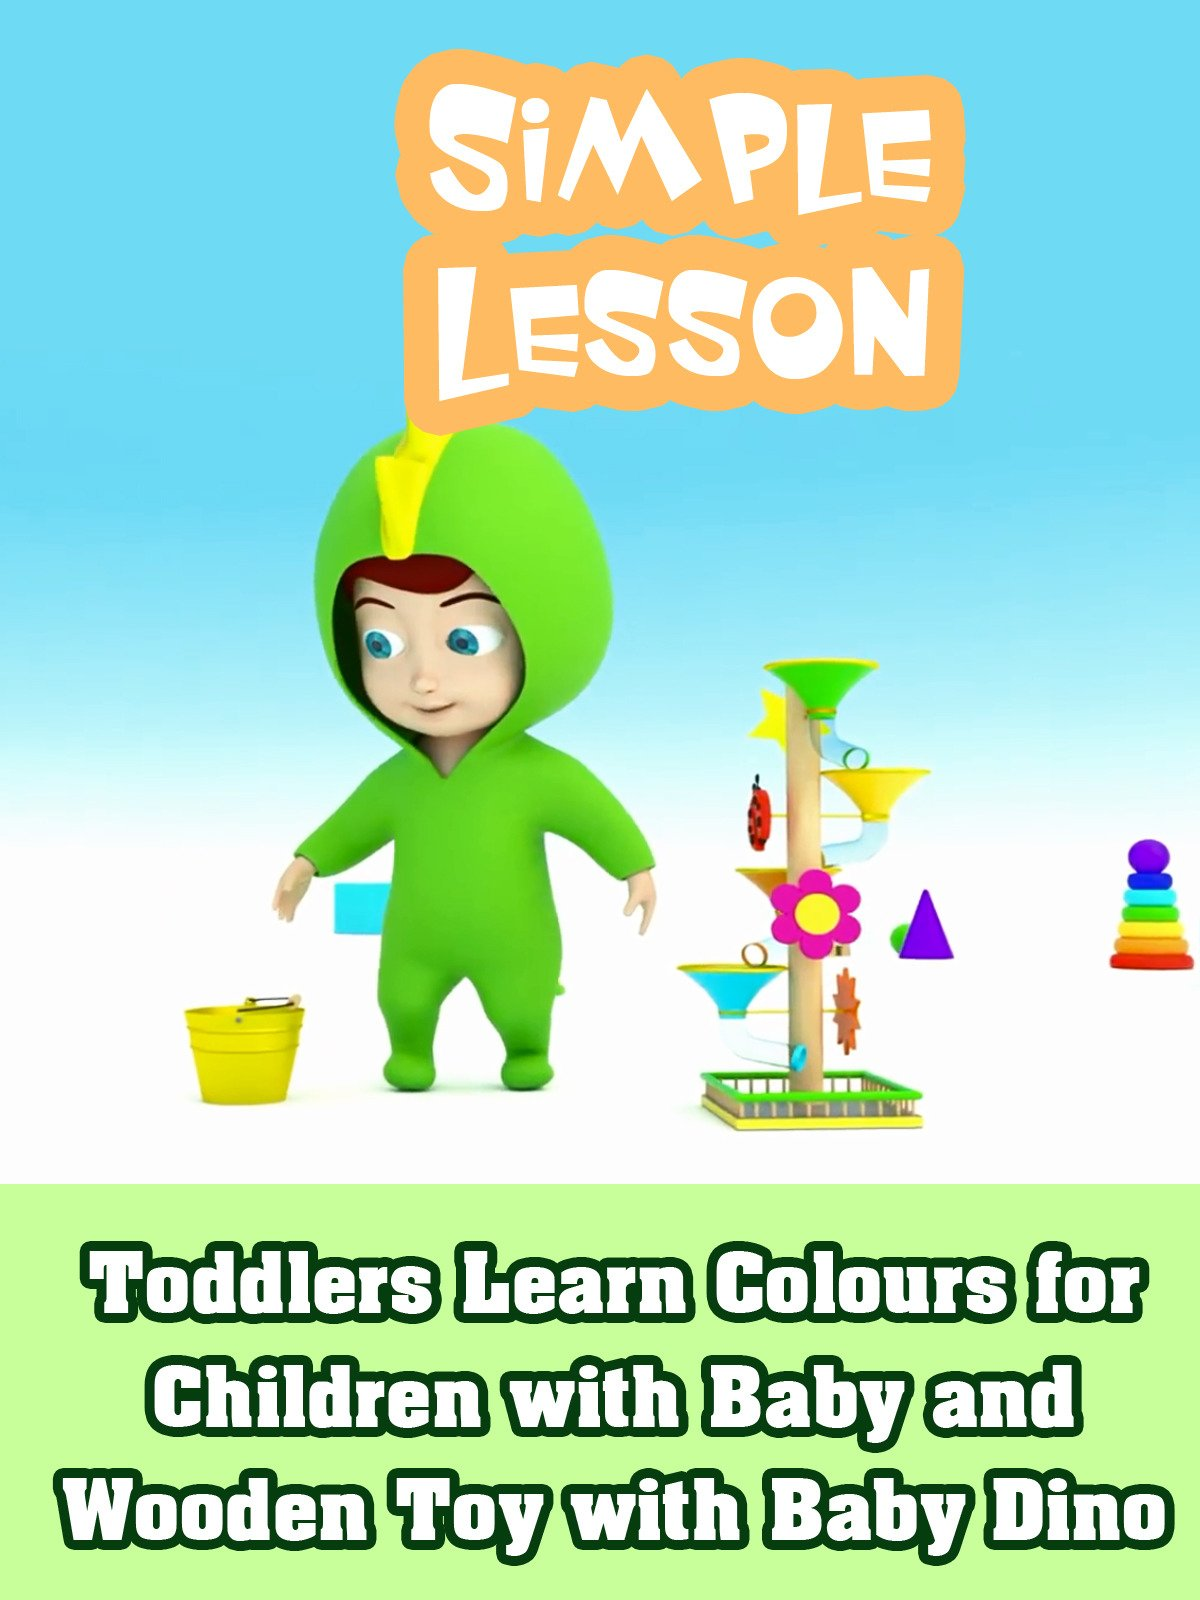 Toddlers Learn Colours for Children with Baby and Wooden Toy with Baby Dino